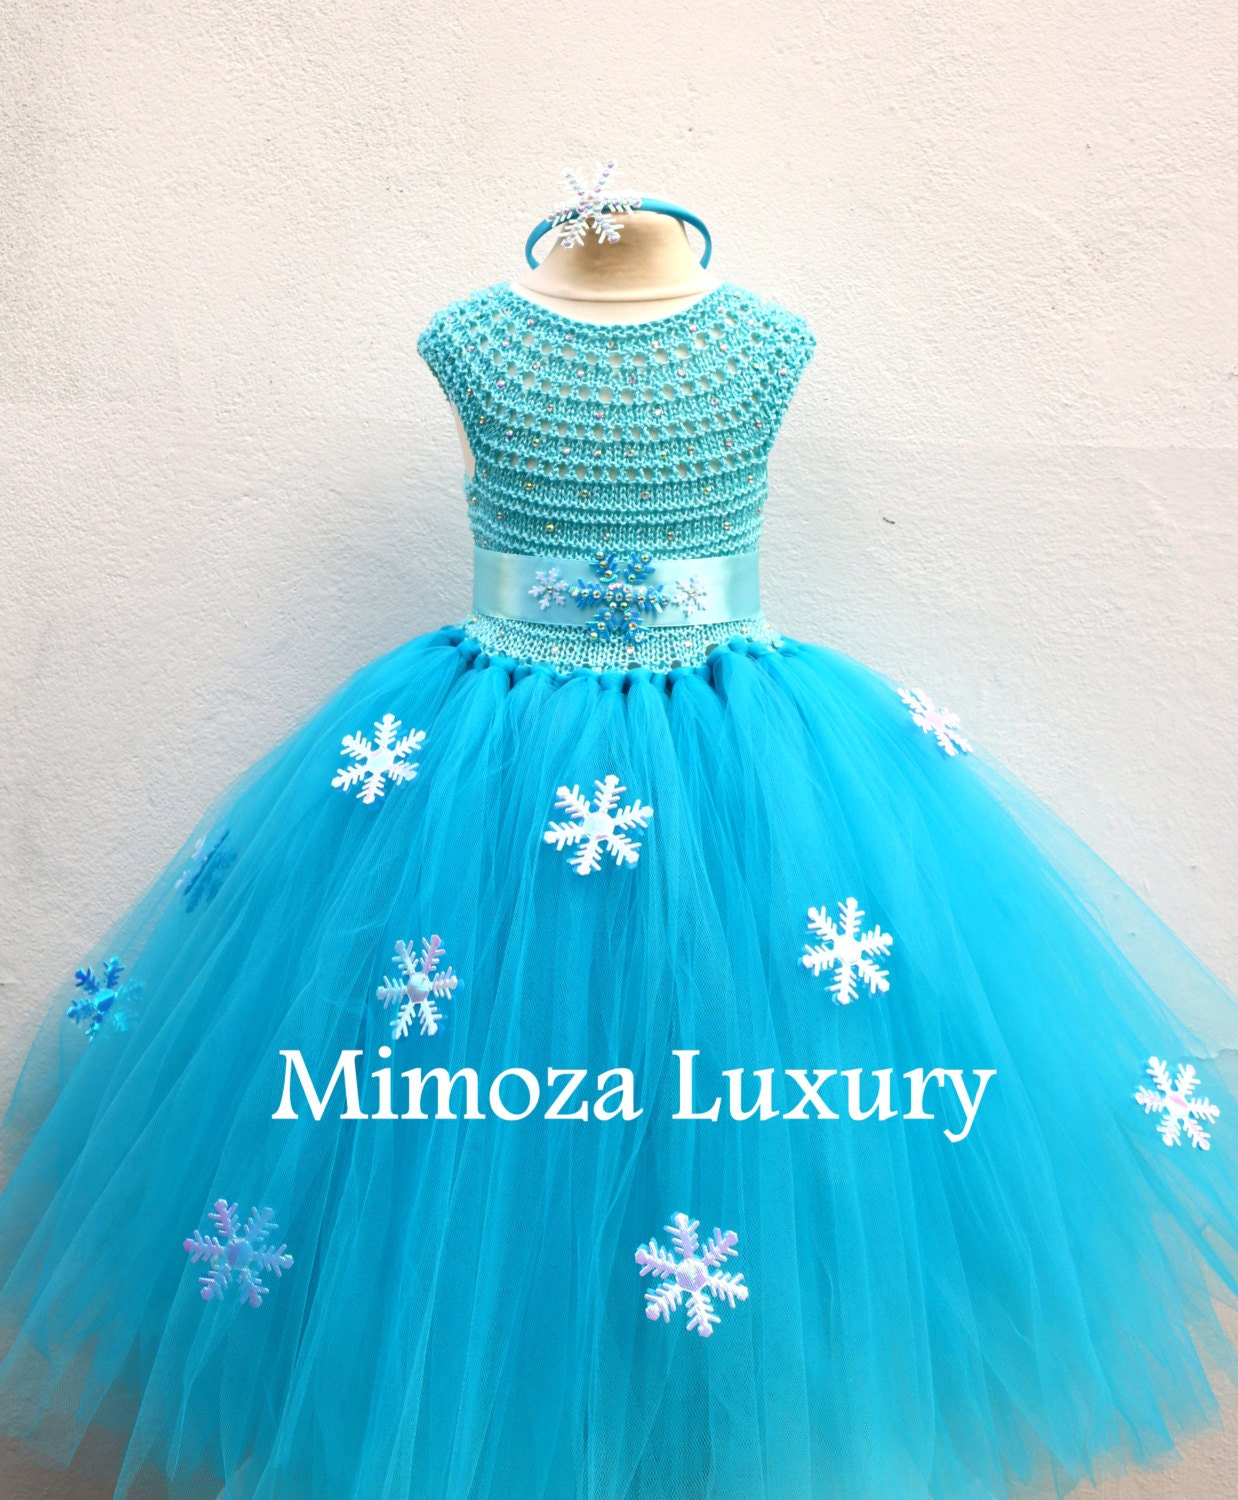 Elsa Deluxe Princess dress, turquoise tutu dress, frozen themed ...